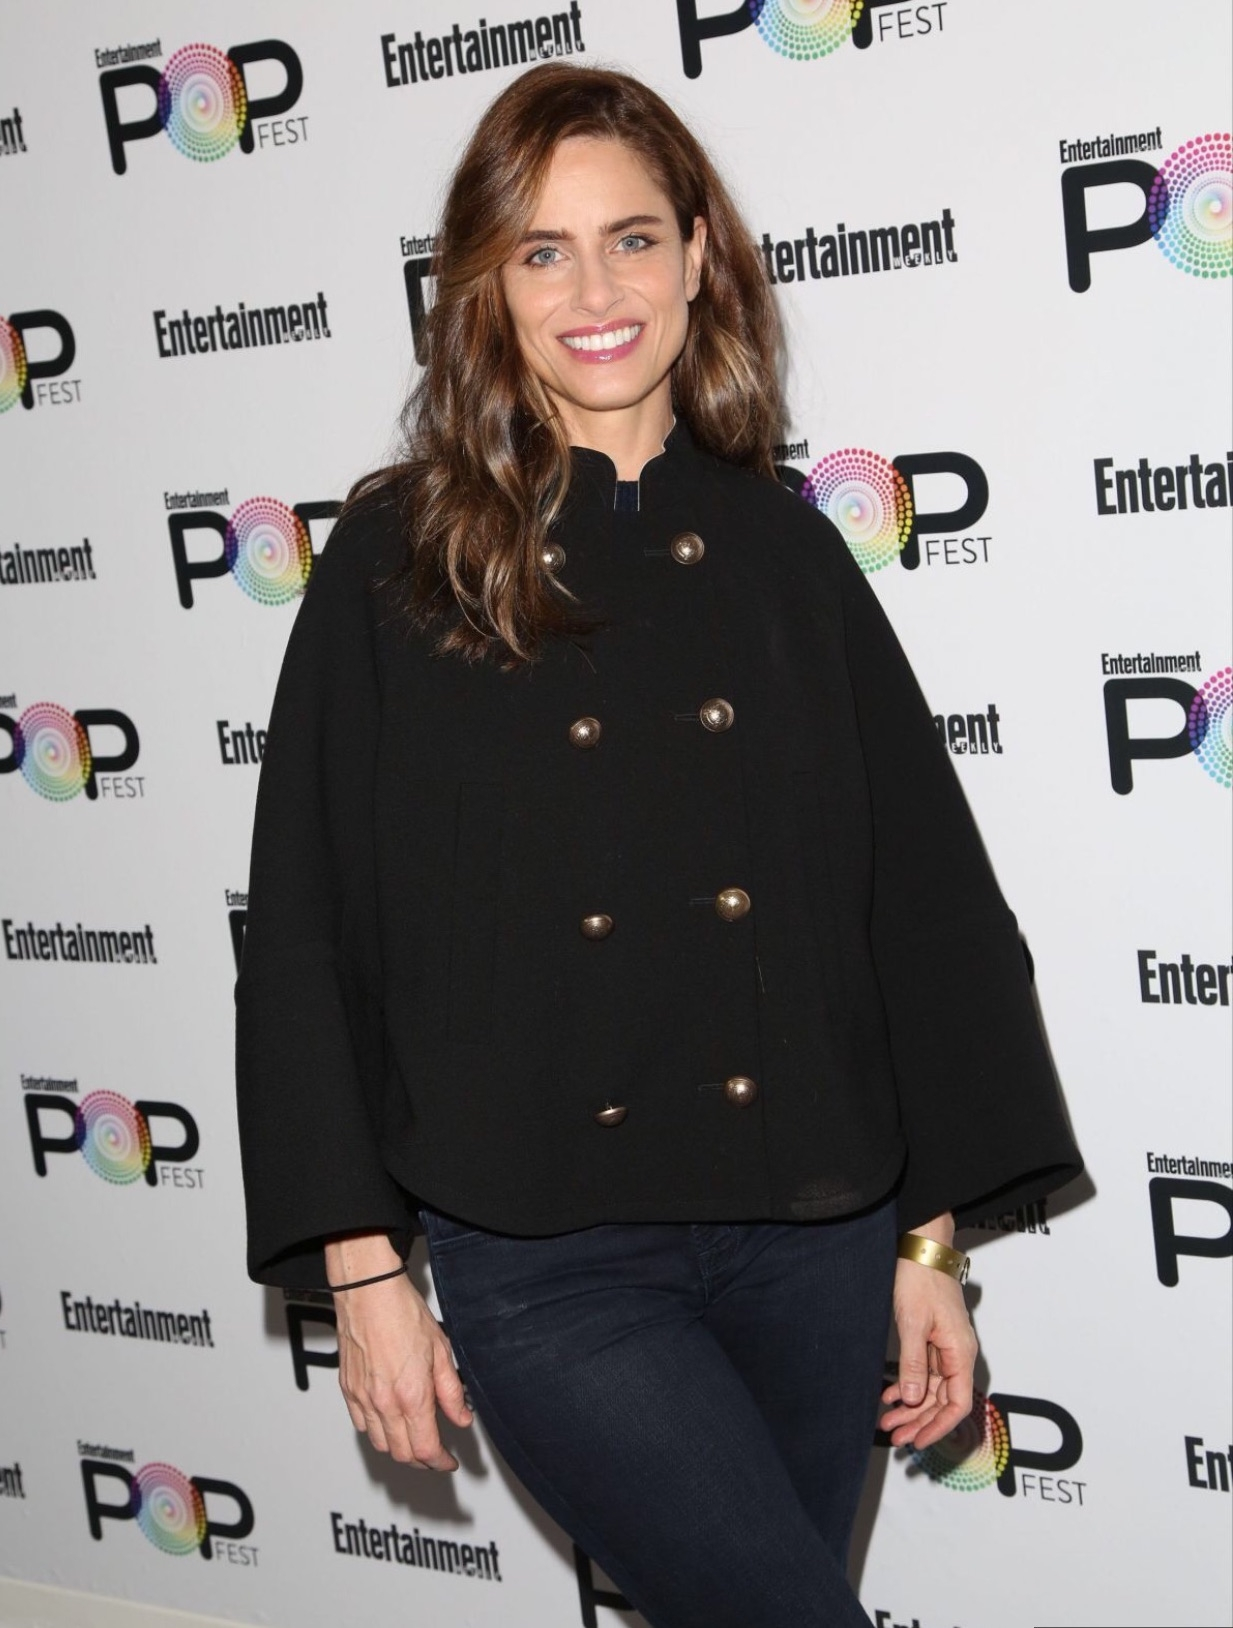 Hair for Amanda Peet - Pop Fest 2016